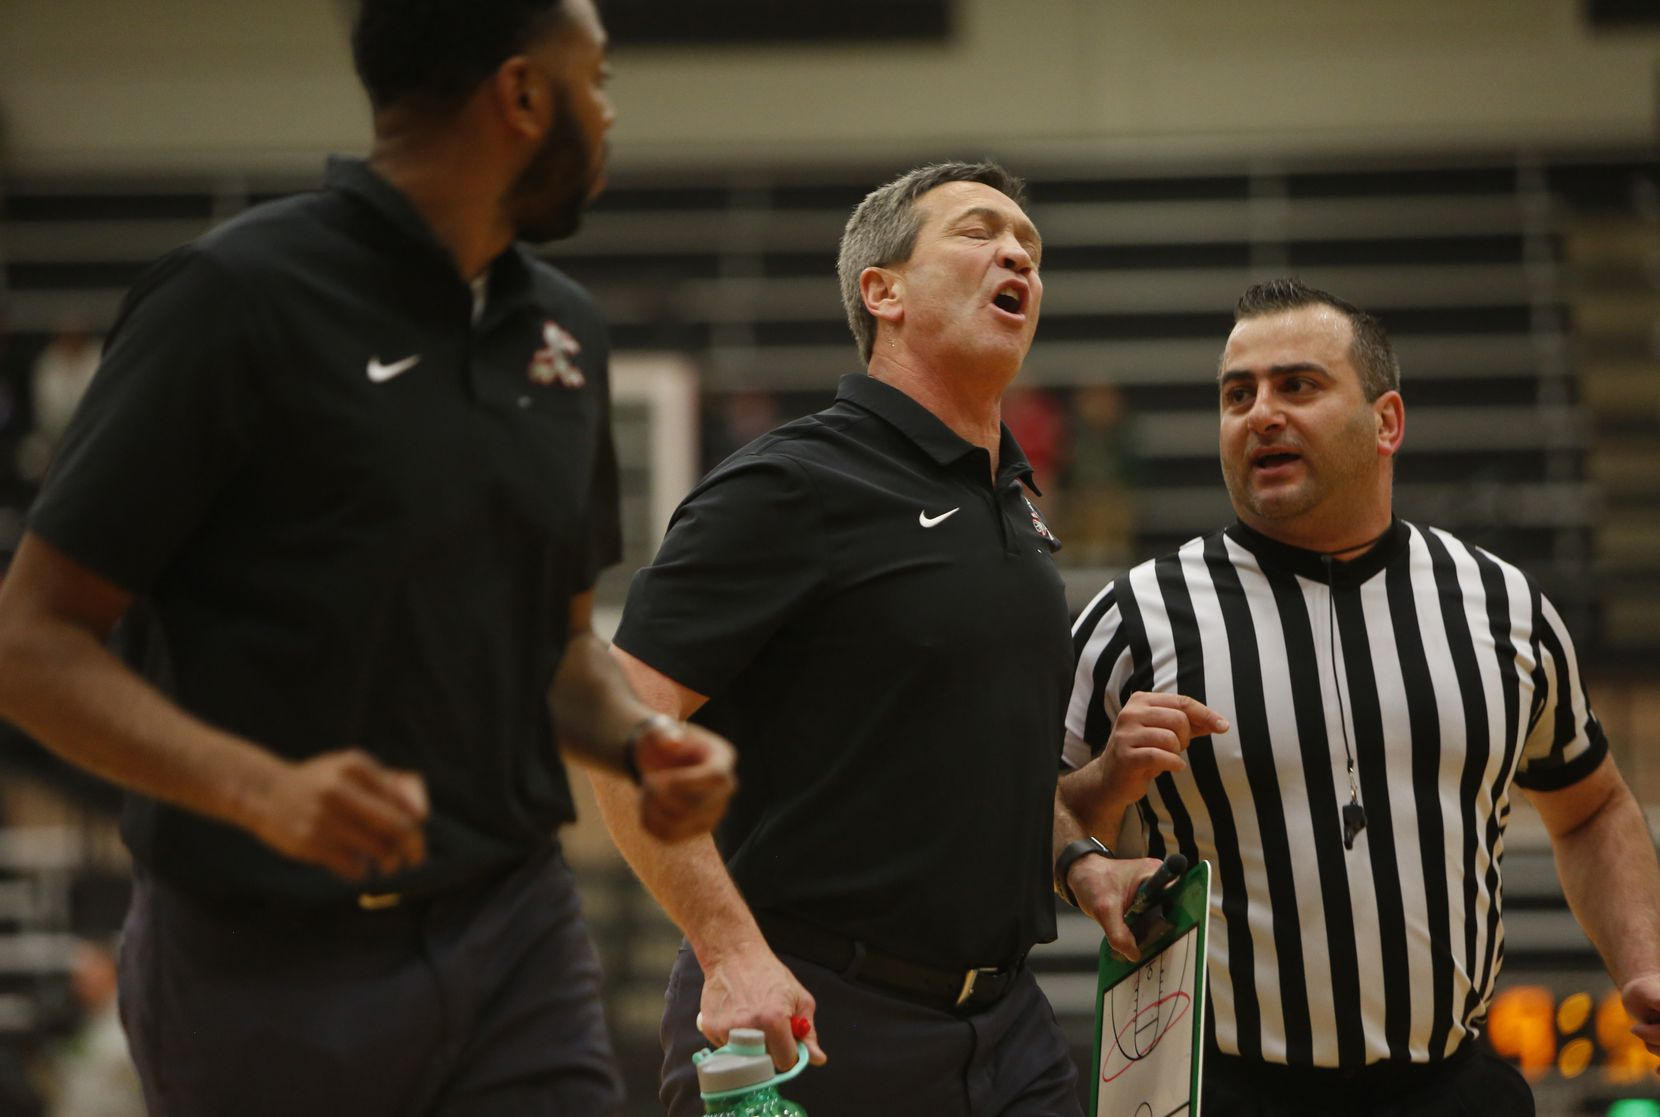 Waxahachie head coach Greg Gober, center, expresses his feelings on a first half call to a game official at halftime of their game against Coppell. Waxahchie won 62-50 to advance. The two teams played their Class 6A area-round boys basketball playoff game at Mansfield Timberview High School in Arlington on February 28, 2020.